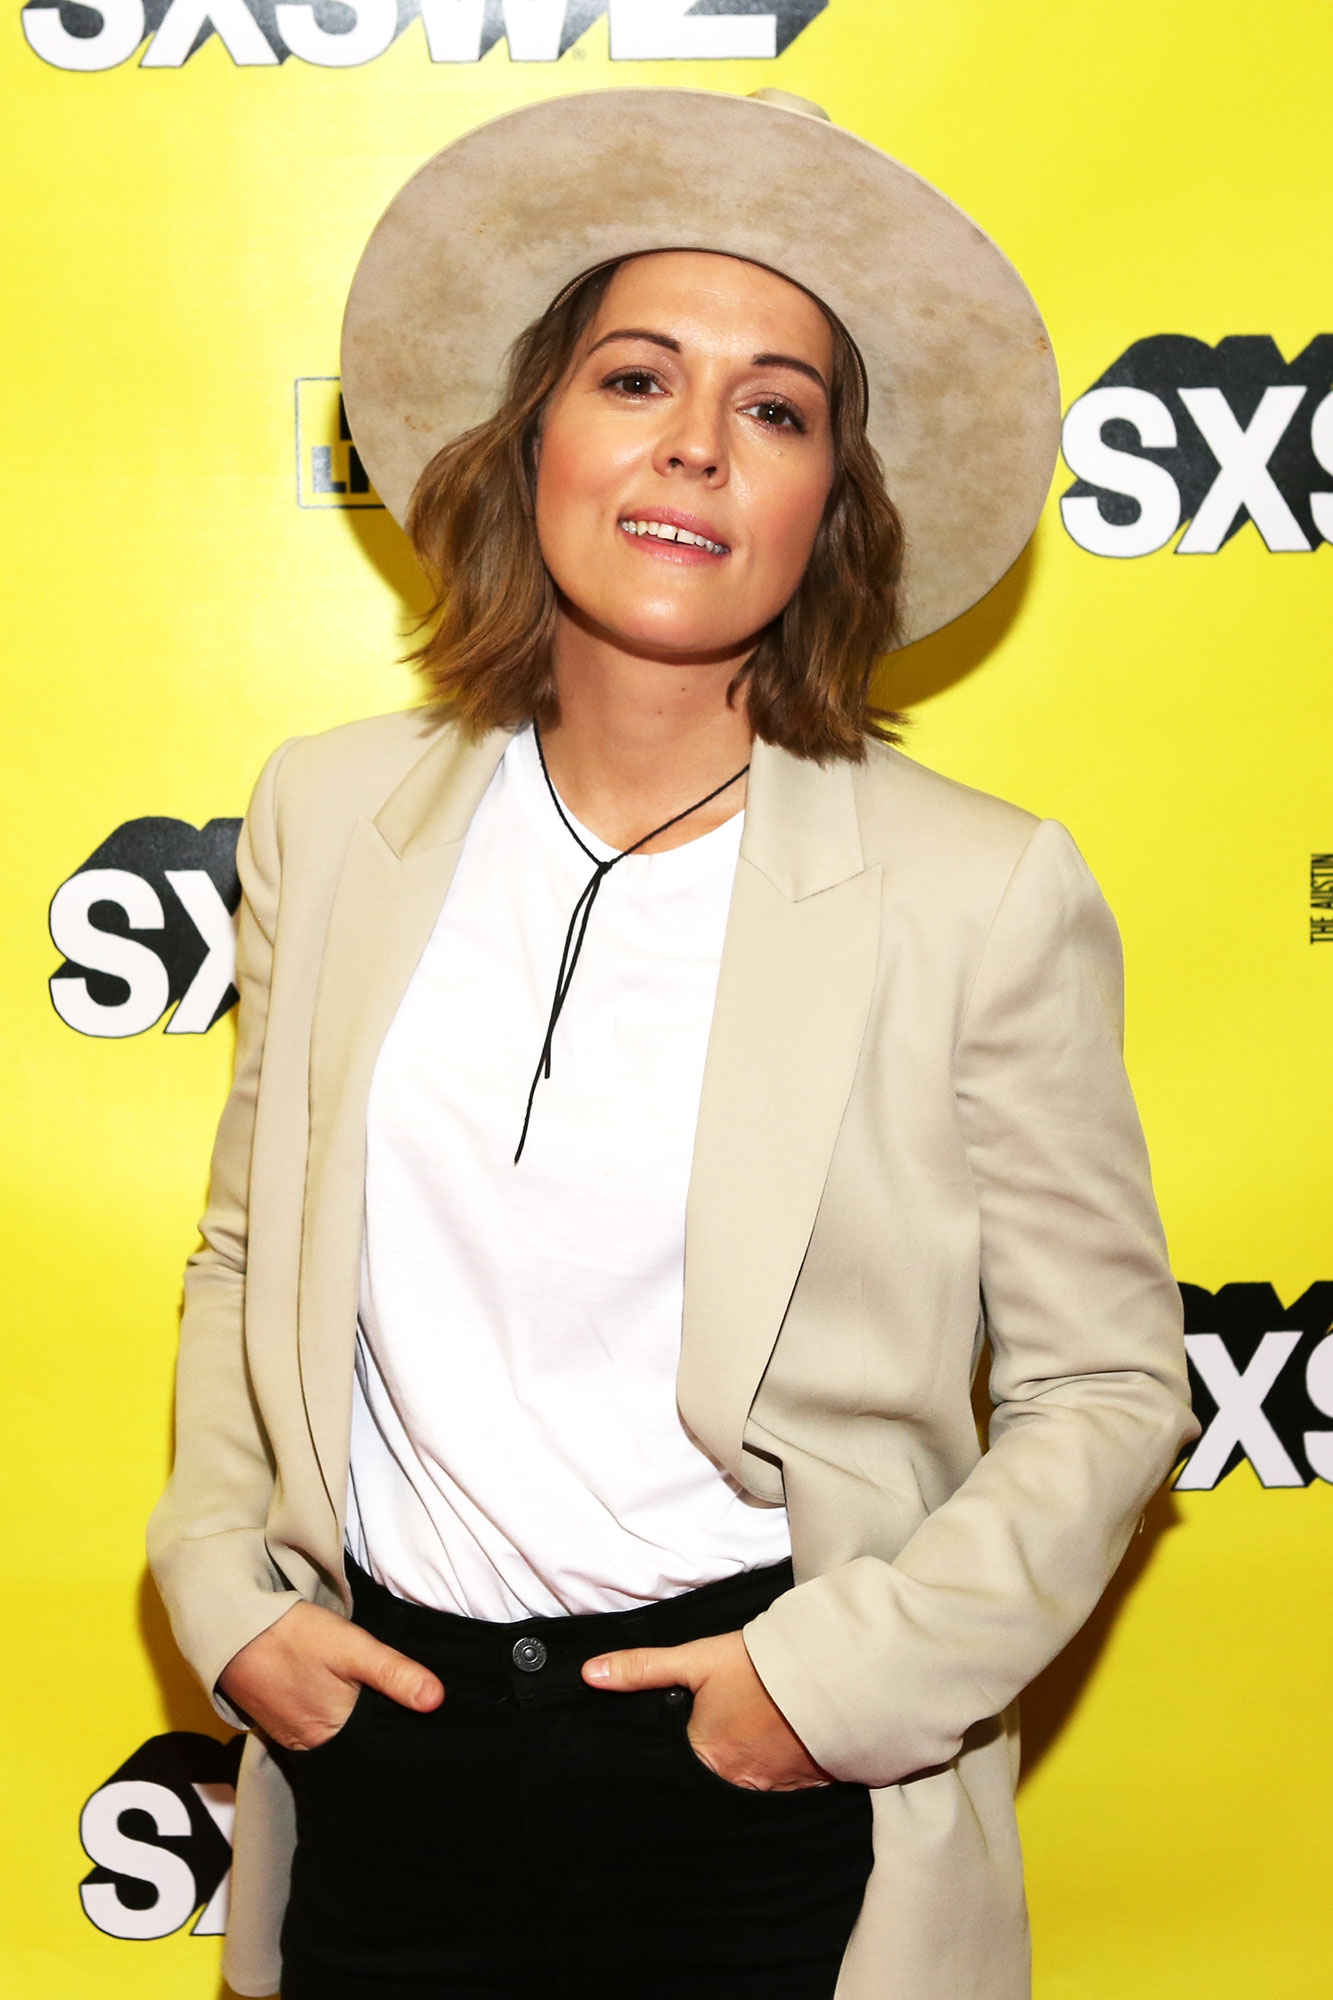 The Stars Bring Their Beauty and Style A-Game to SXSW - The songstress made the case for matching your blazer to her headwear at an interview on Sunday, March 10.